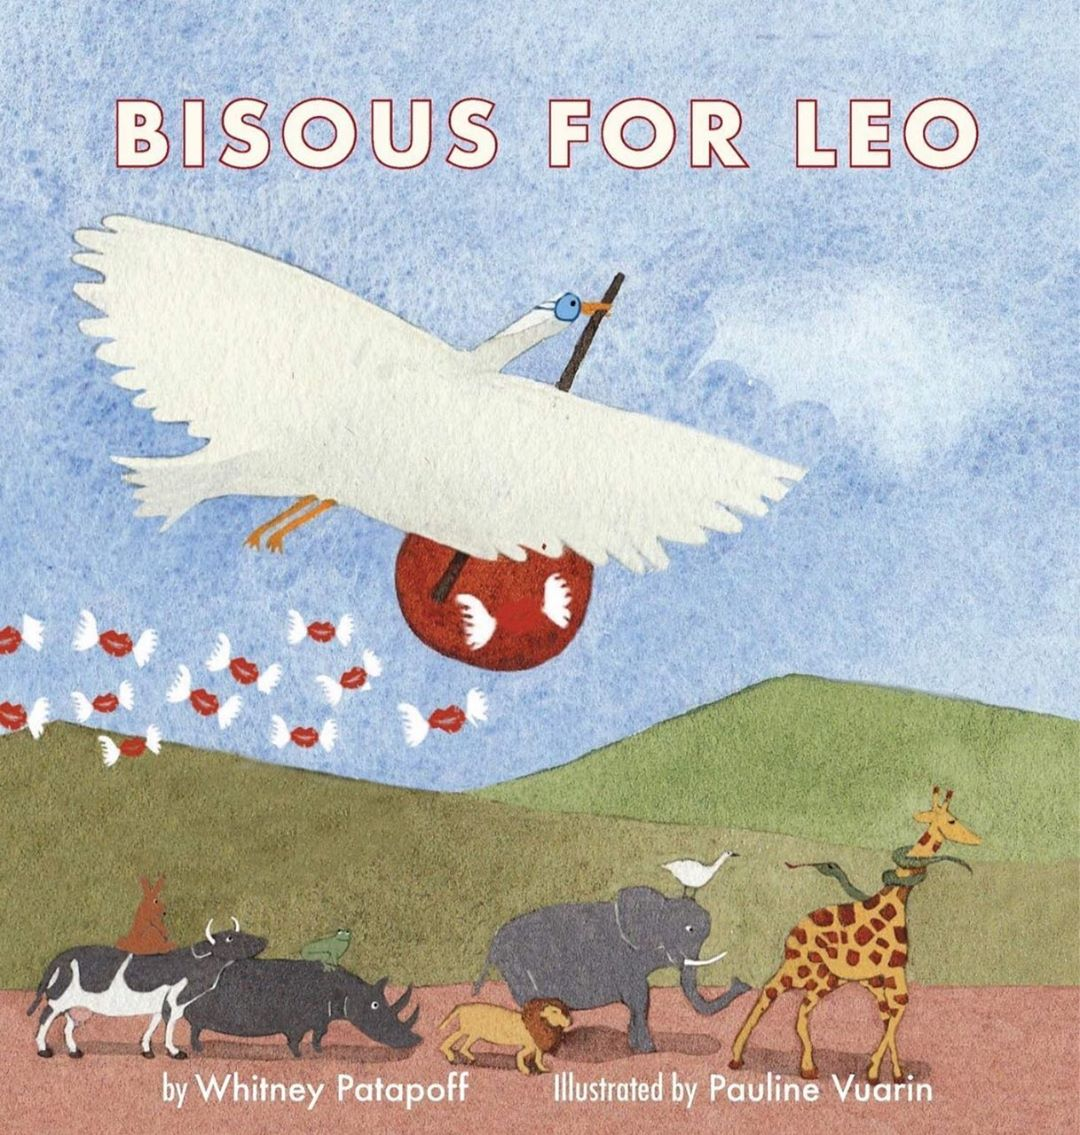 Bisous for Leo Book Cover